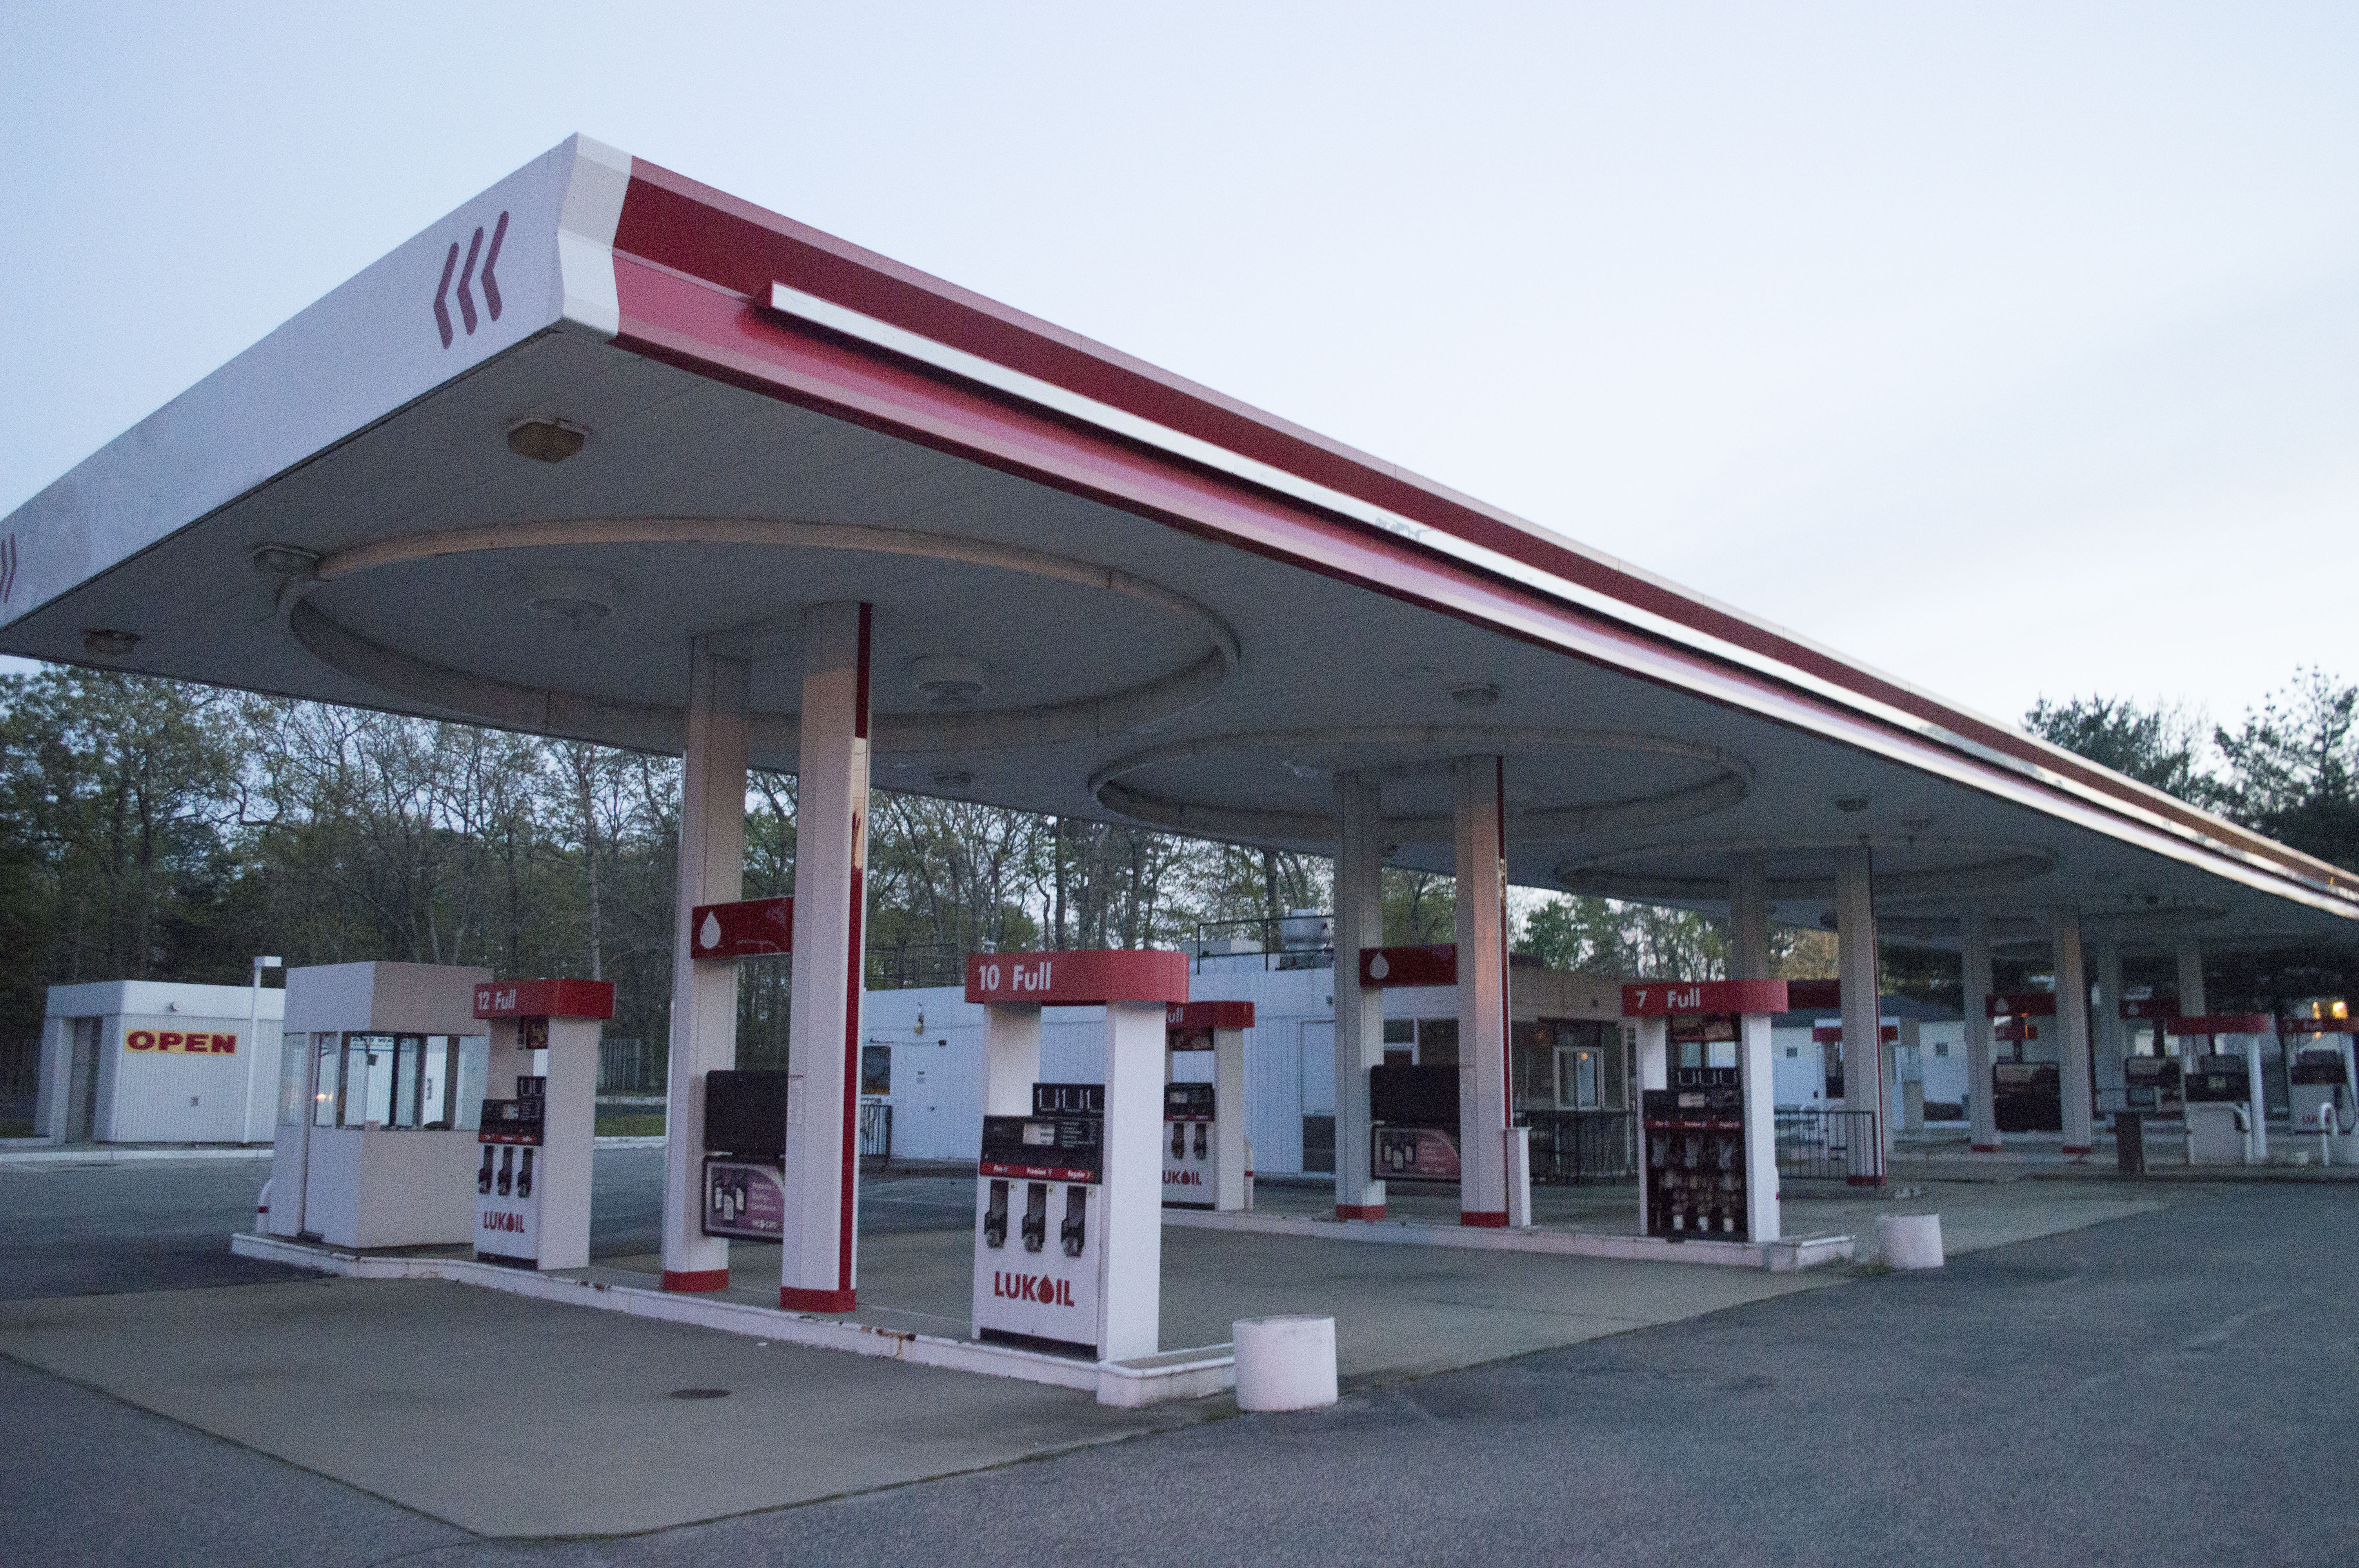 The Lukoil station at the corner of Route 88 and Jordan Road in Brick. (Photo: Daniel Nee)